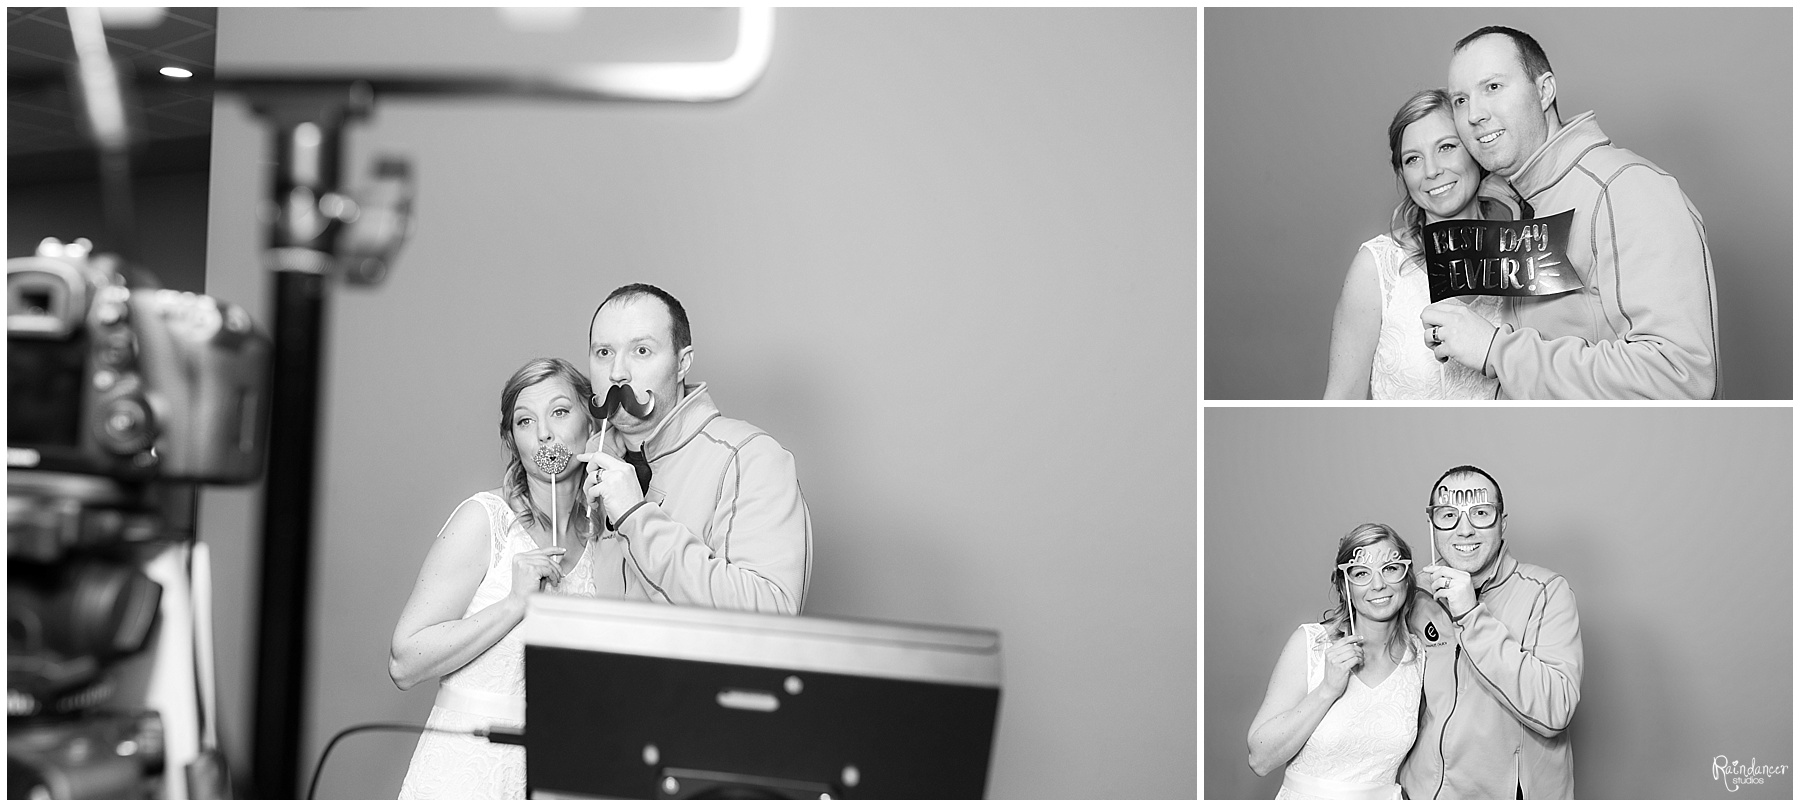 Bride and groom taking pictures at a Photo Booth by Raindancer Studio Indianapolis Wedding Photographer Jill Howell